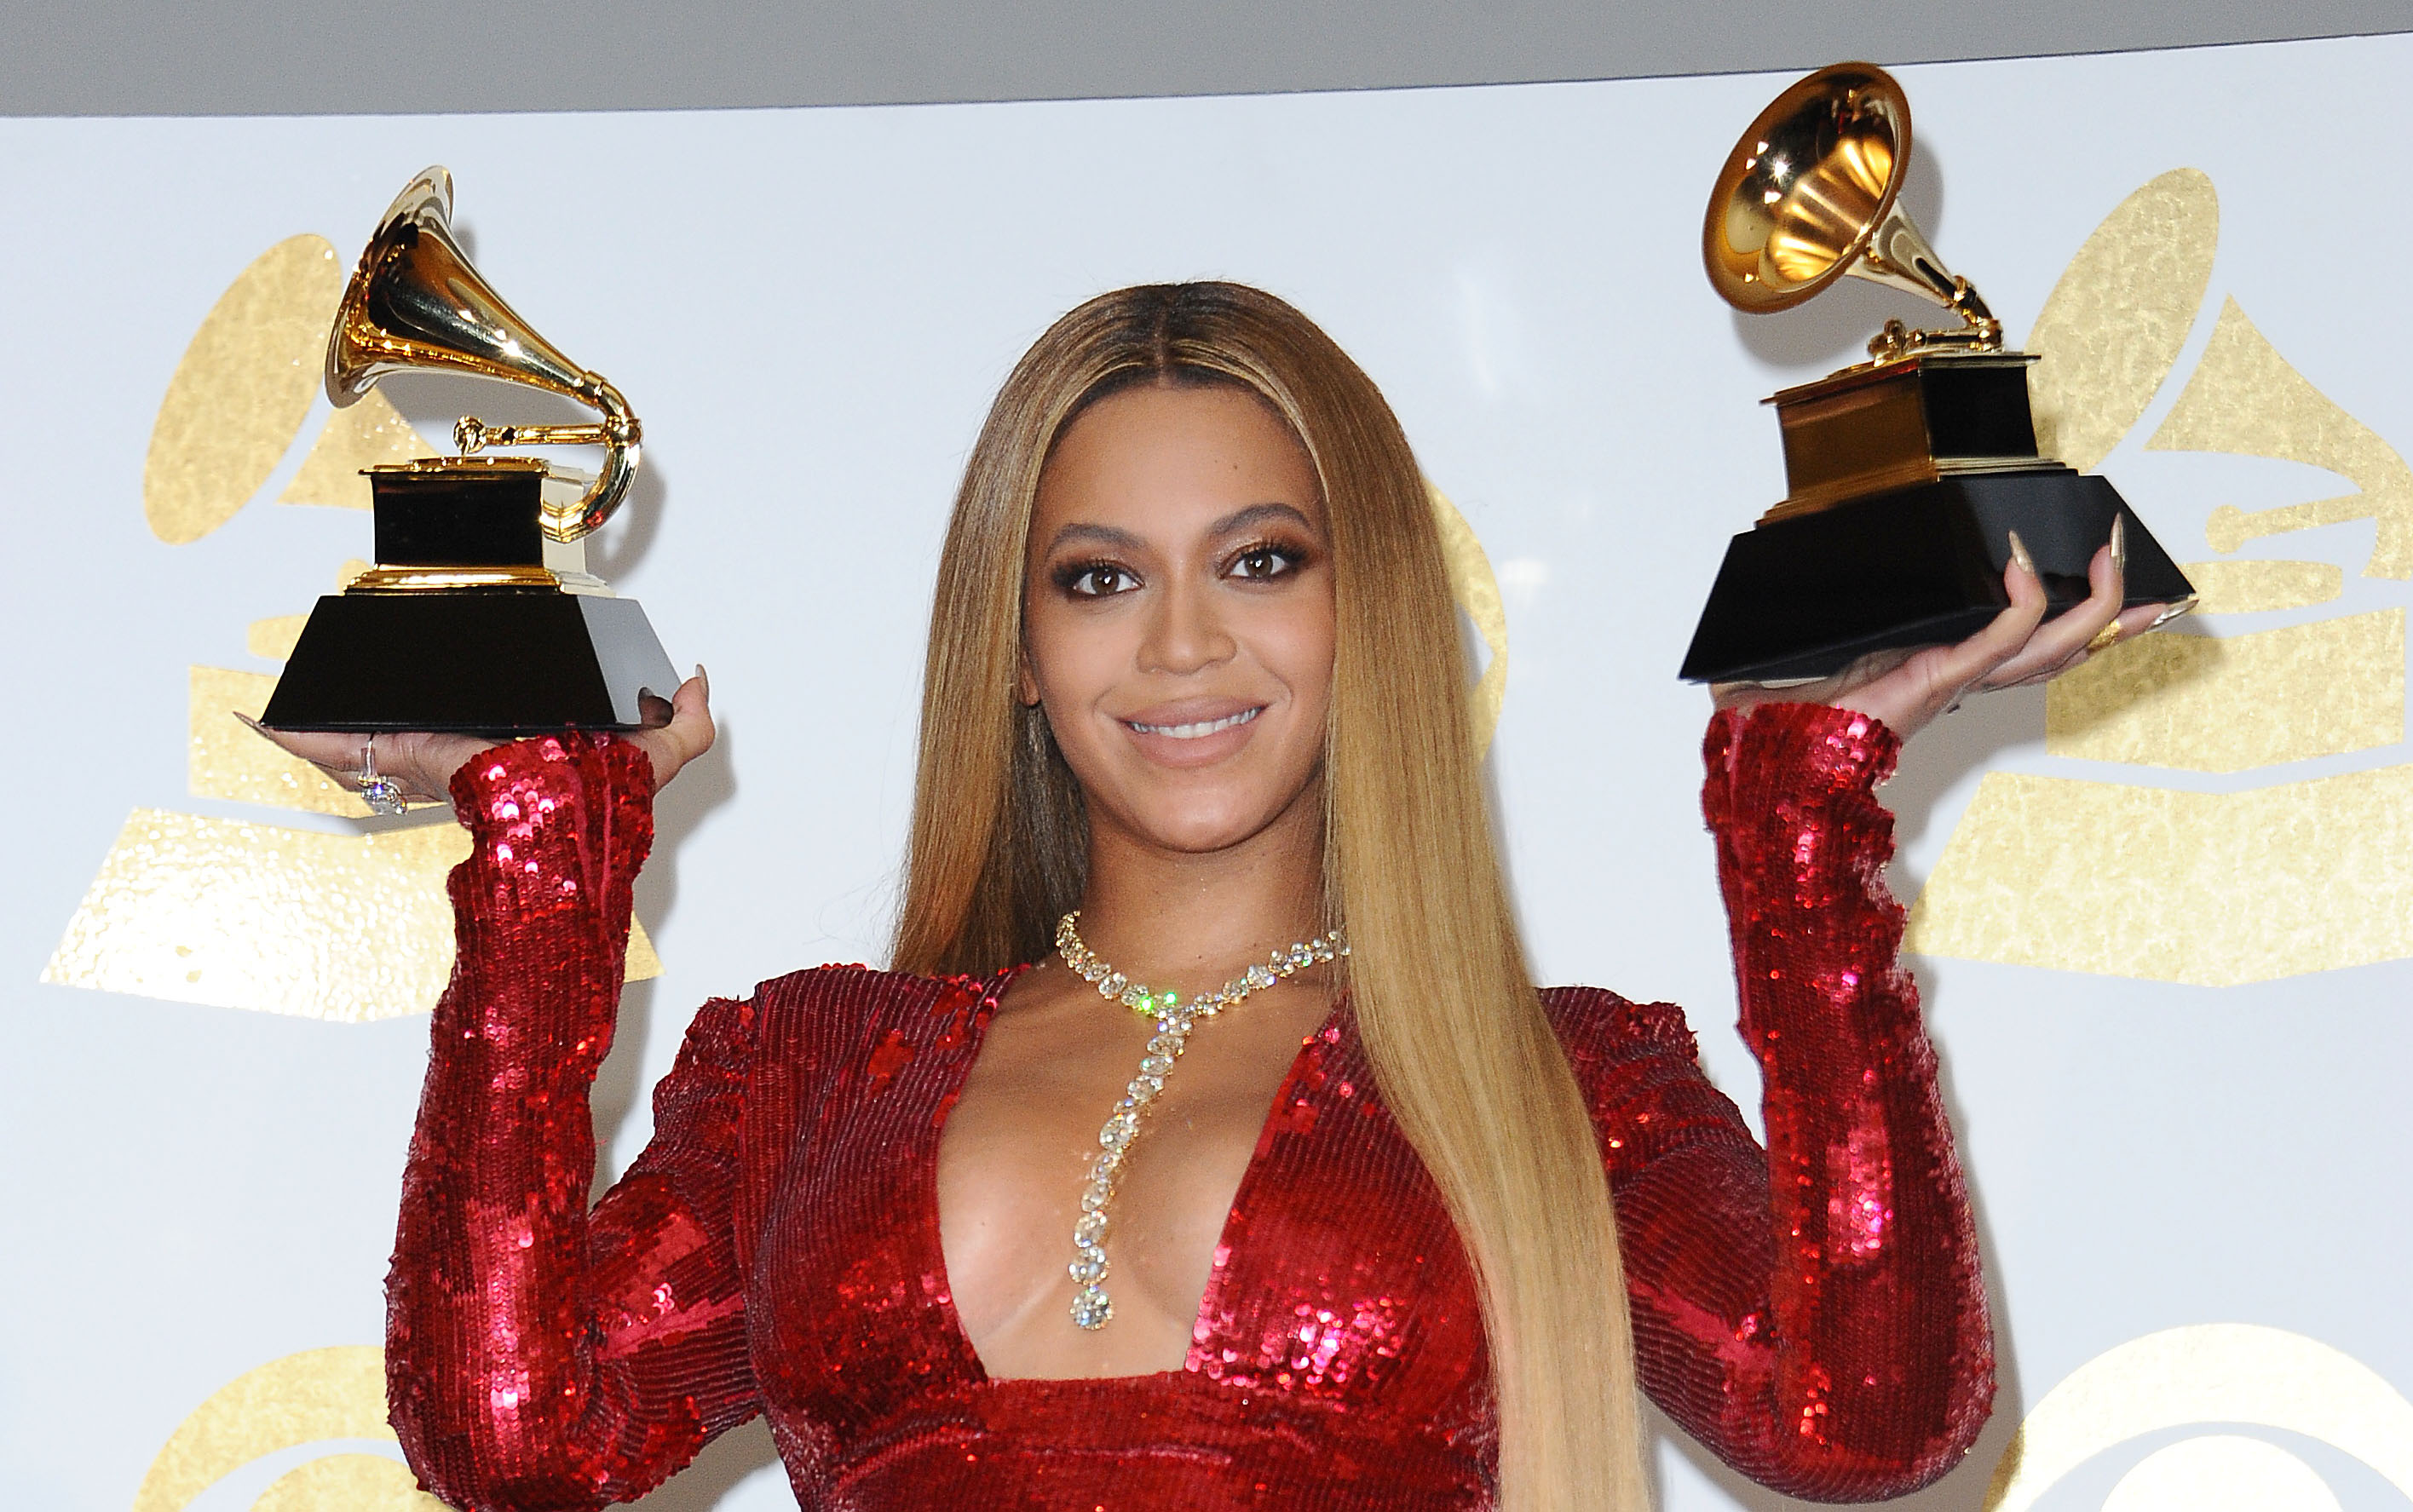 Beyonce Grammys: How Many Grammys Does Queen Beyoncé Have?